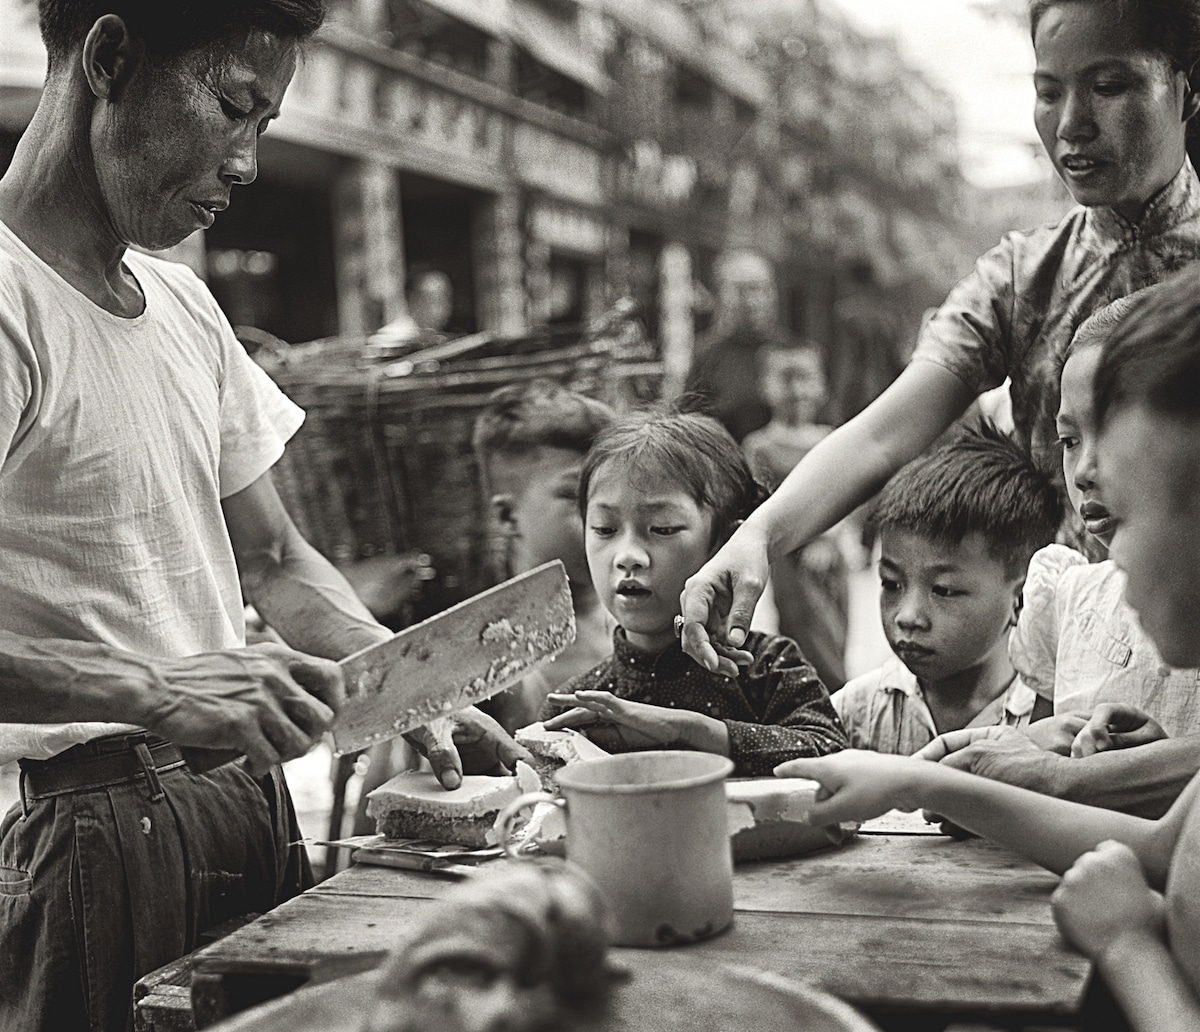 Fan-Ho-Cant-Wait貪嘴-Hong-Kong-1950s-and-60s-courtesy-of-Blue-Lotus-Gallery